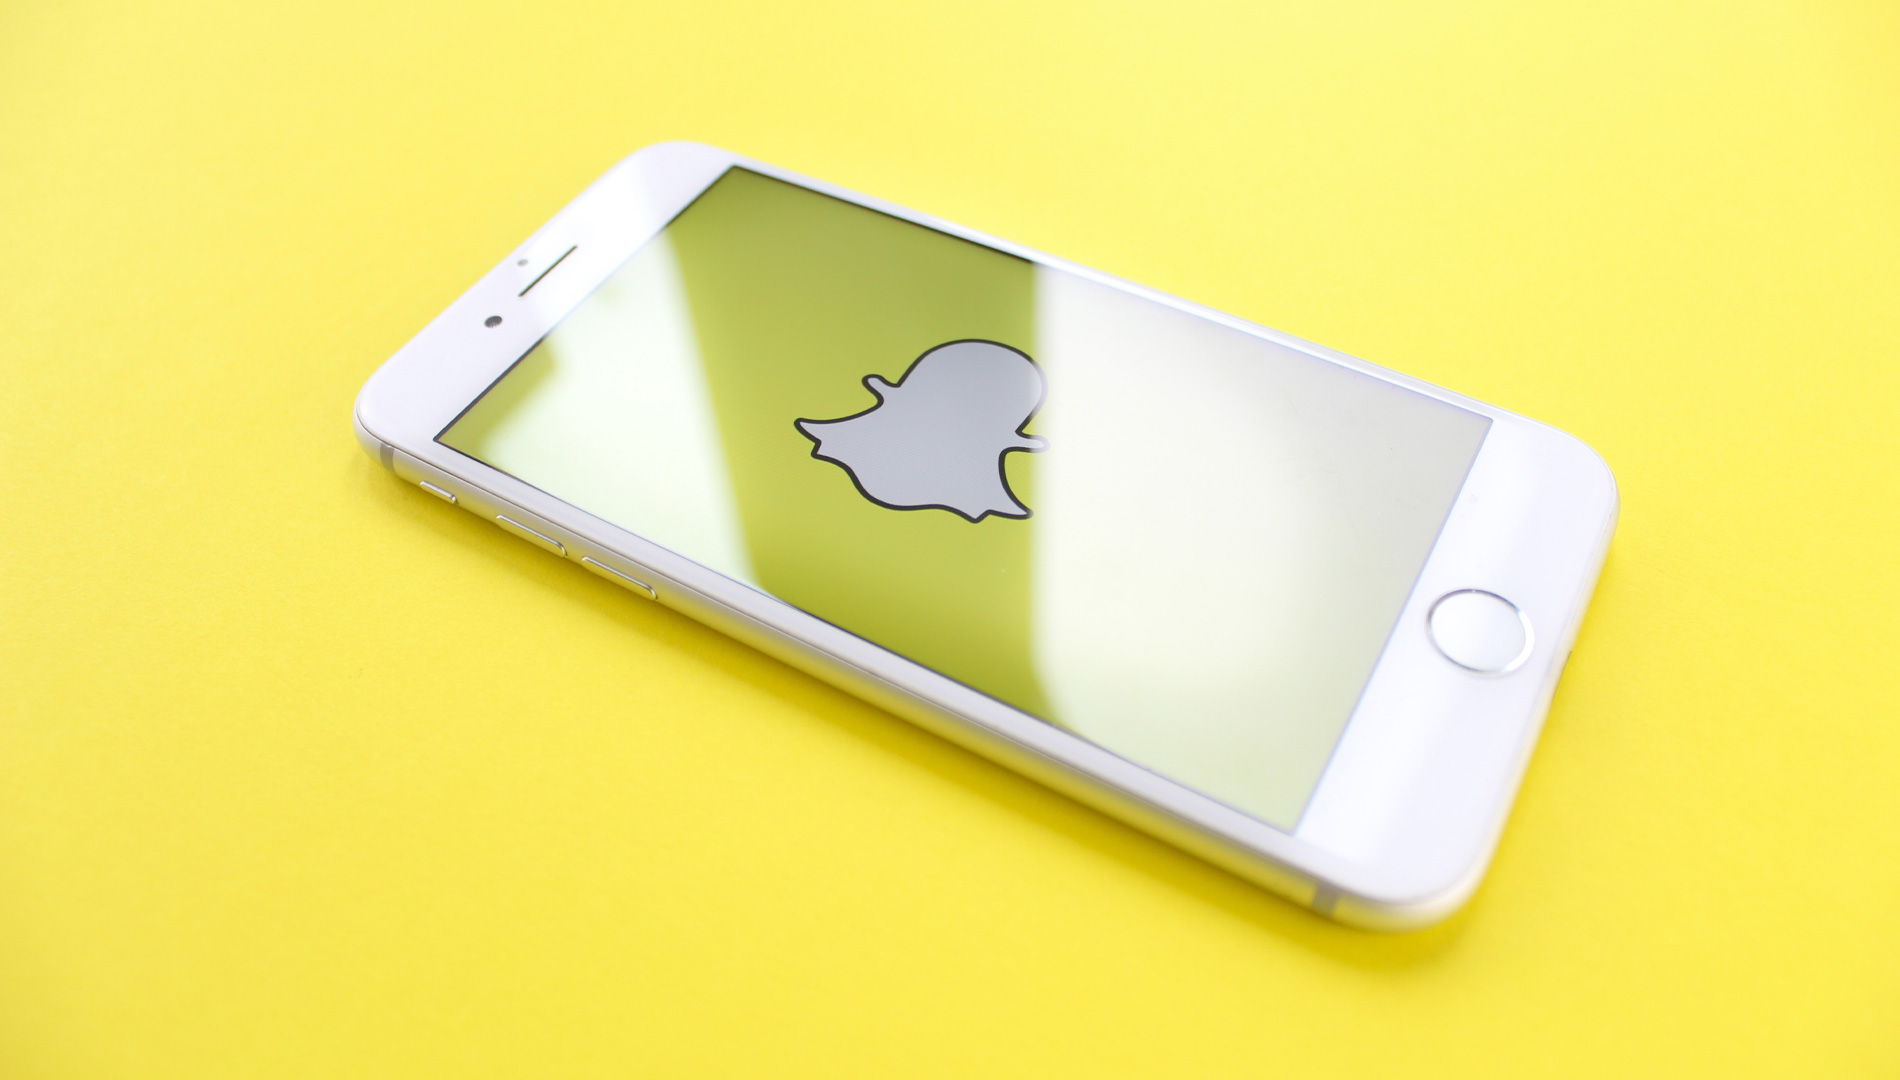 silver iPhone 6 on top of yellow wooden surface showing Snapchat